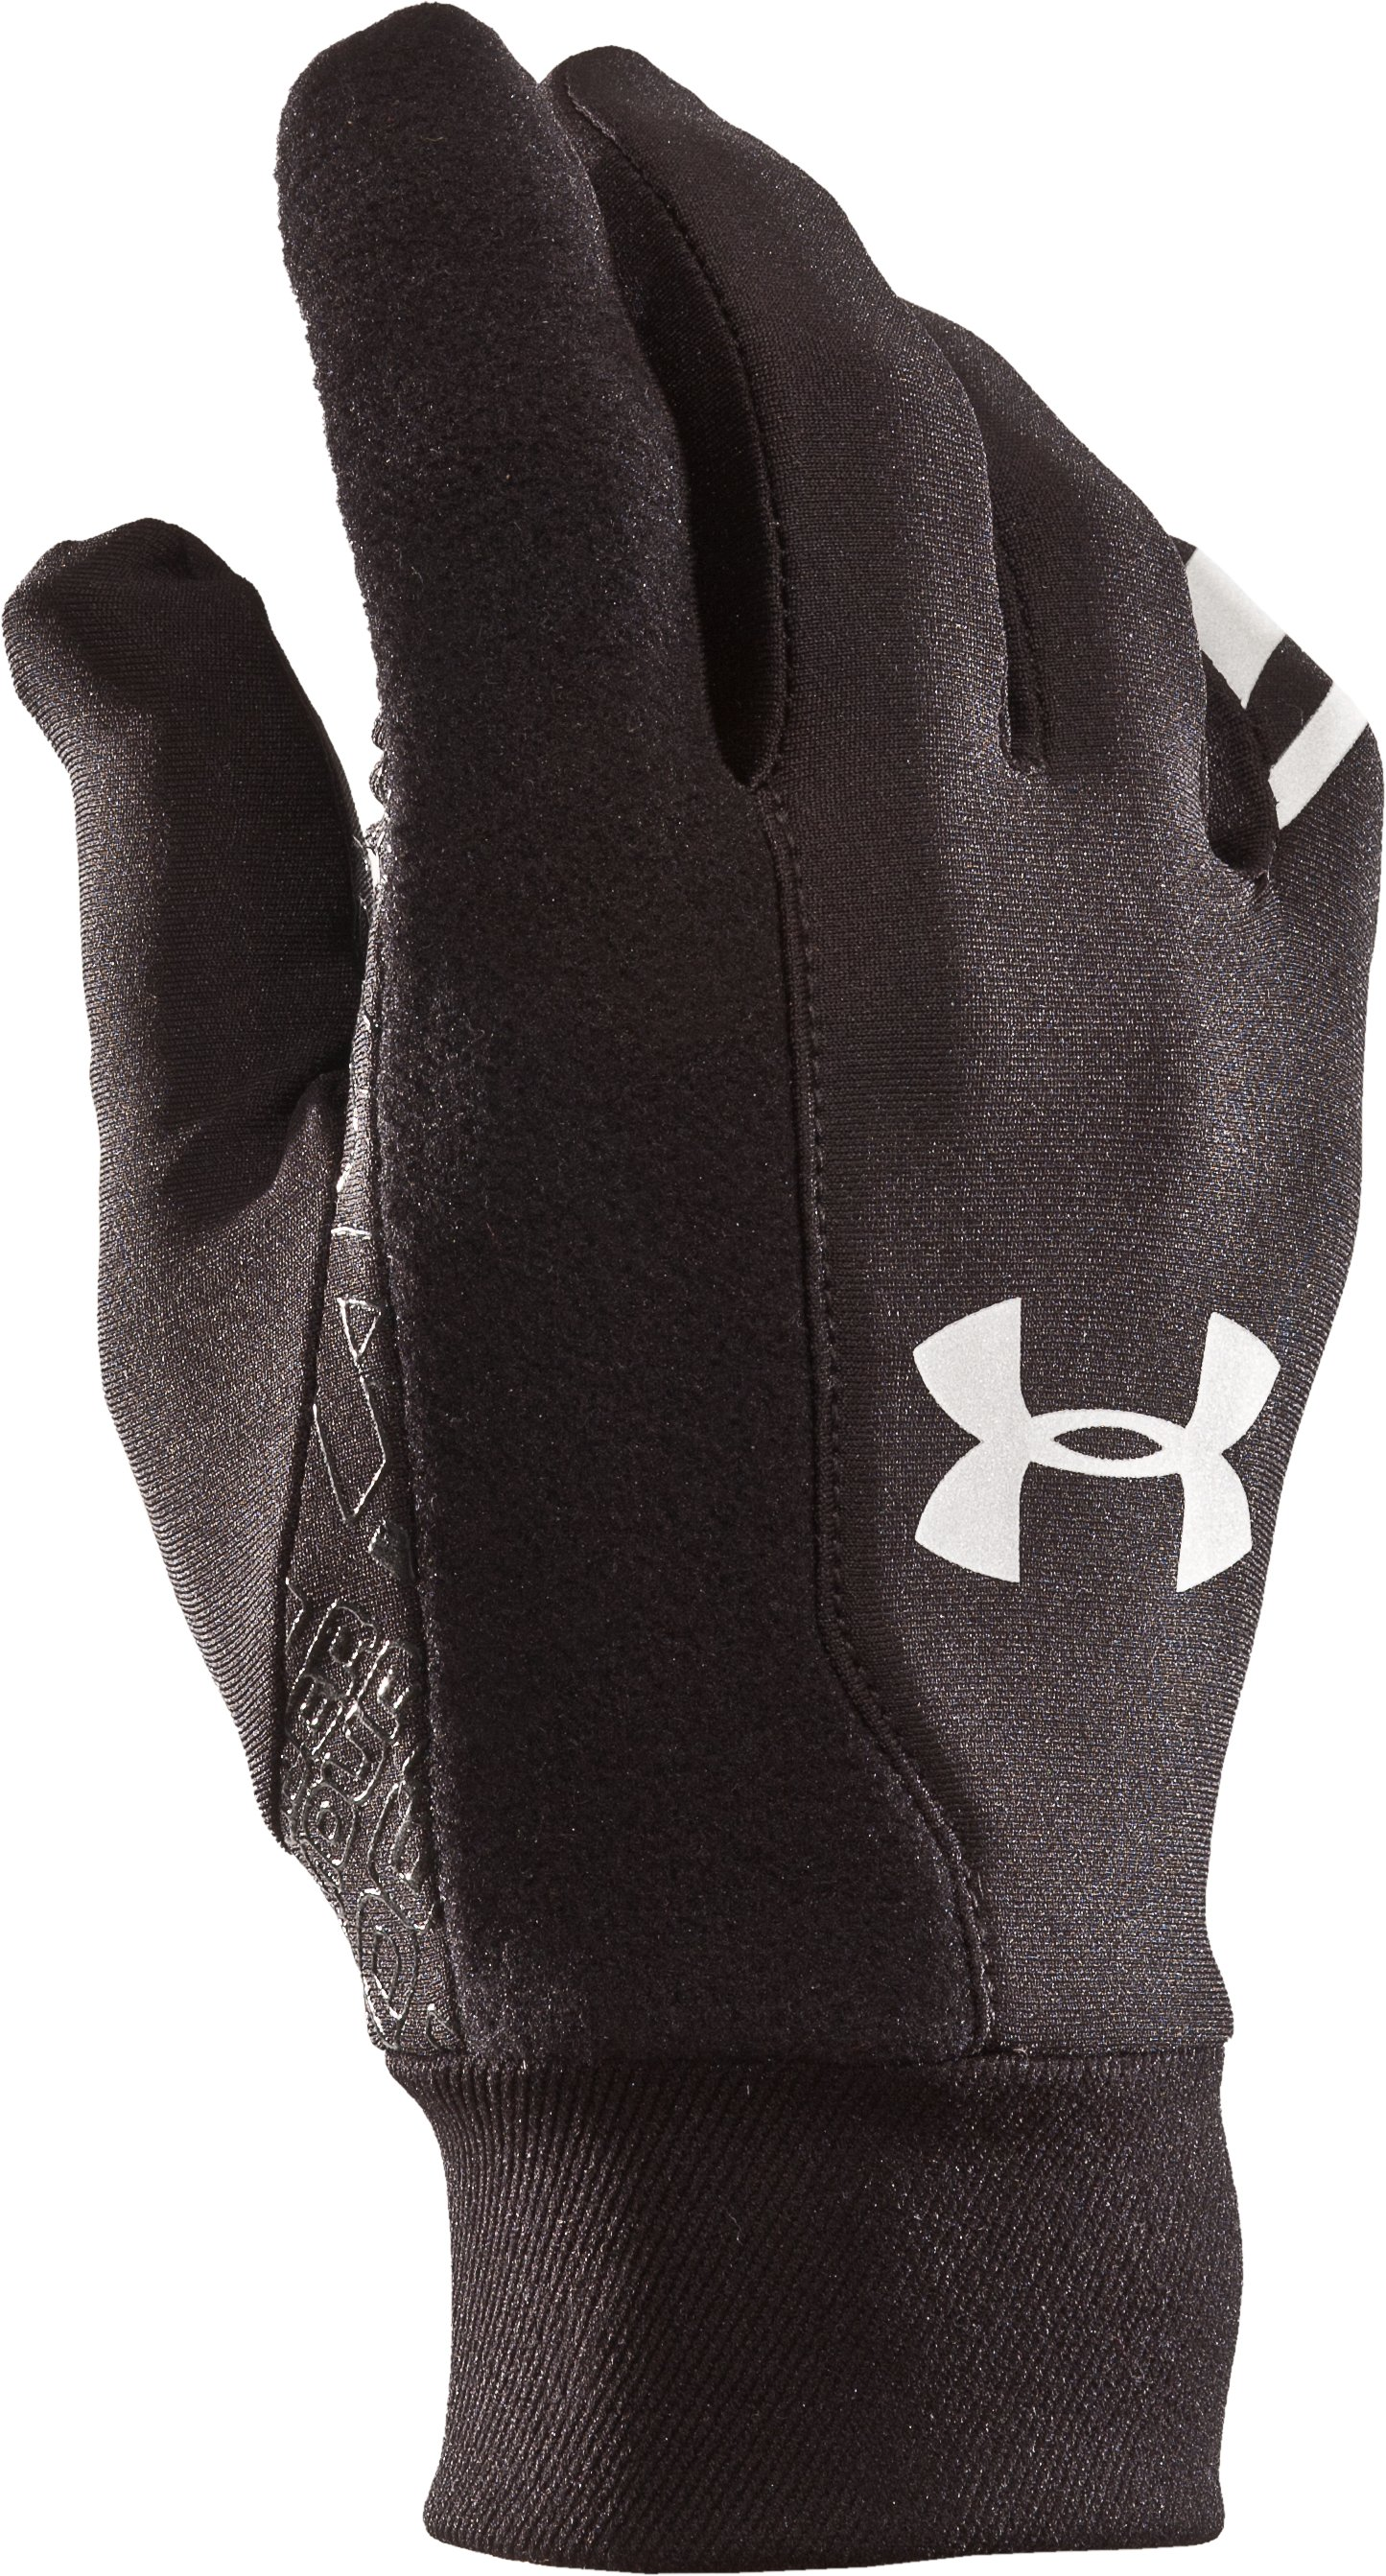 ColdGear® Liner Gloves, Black , undefined